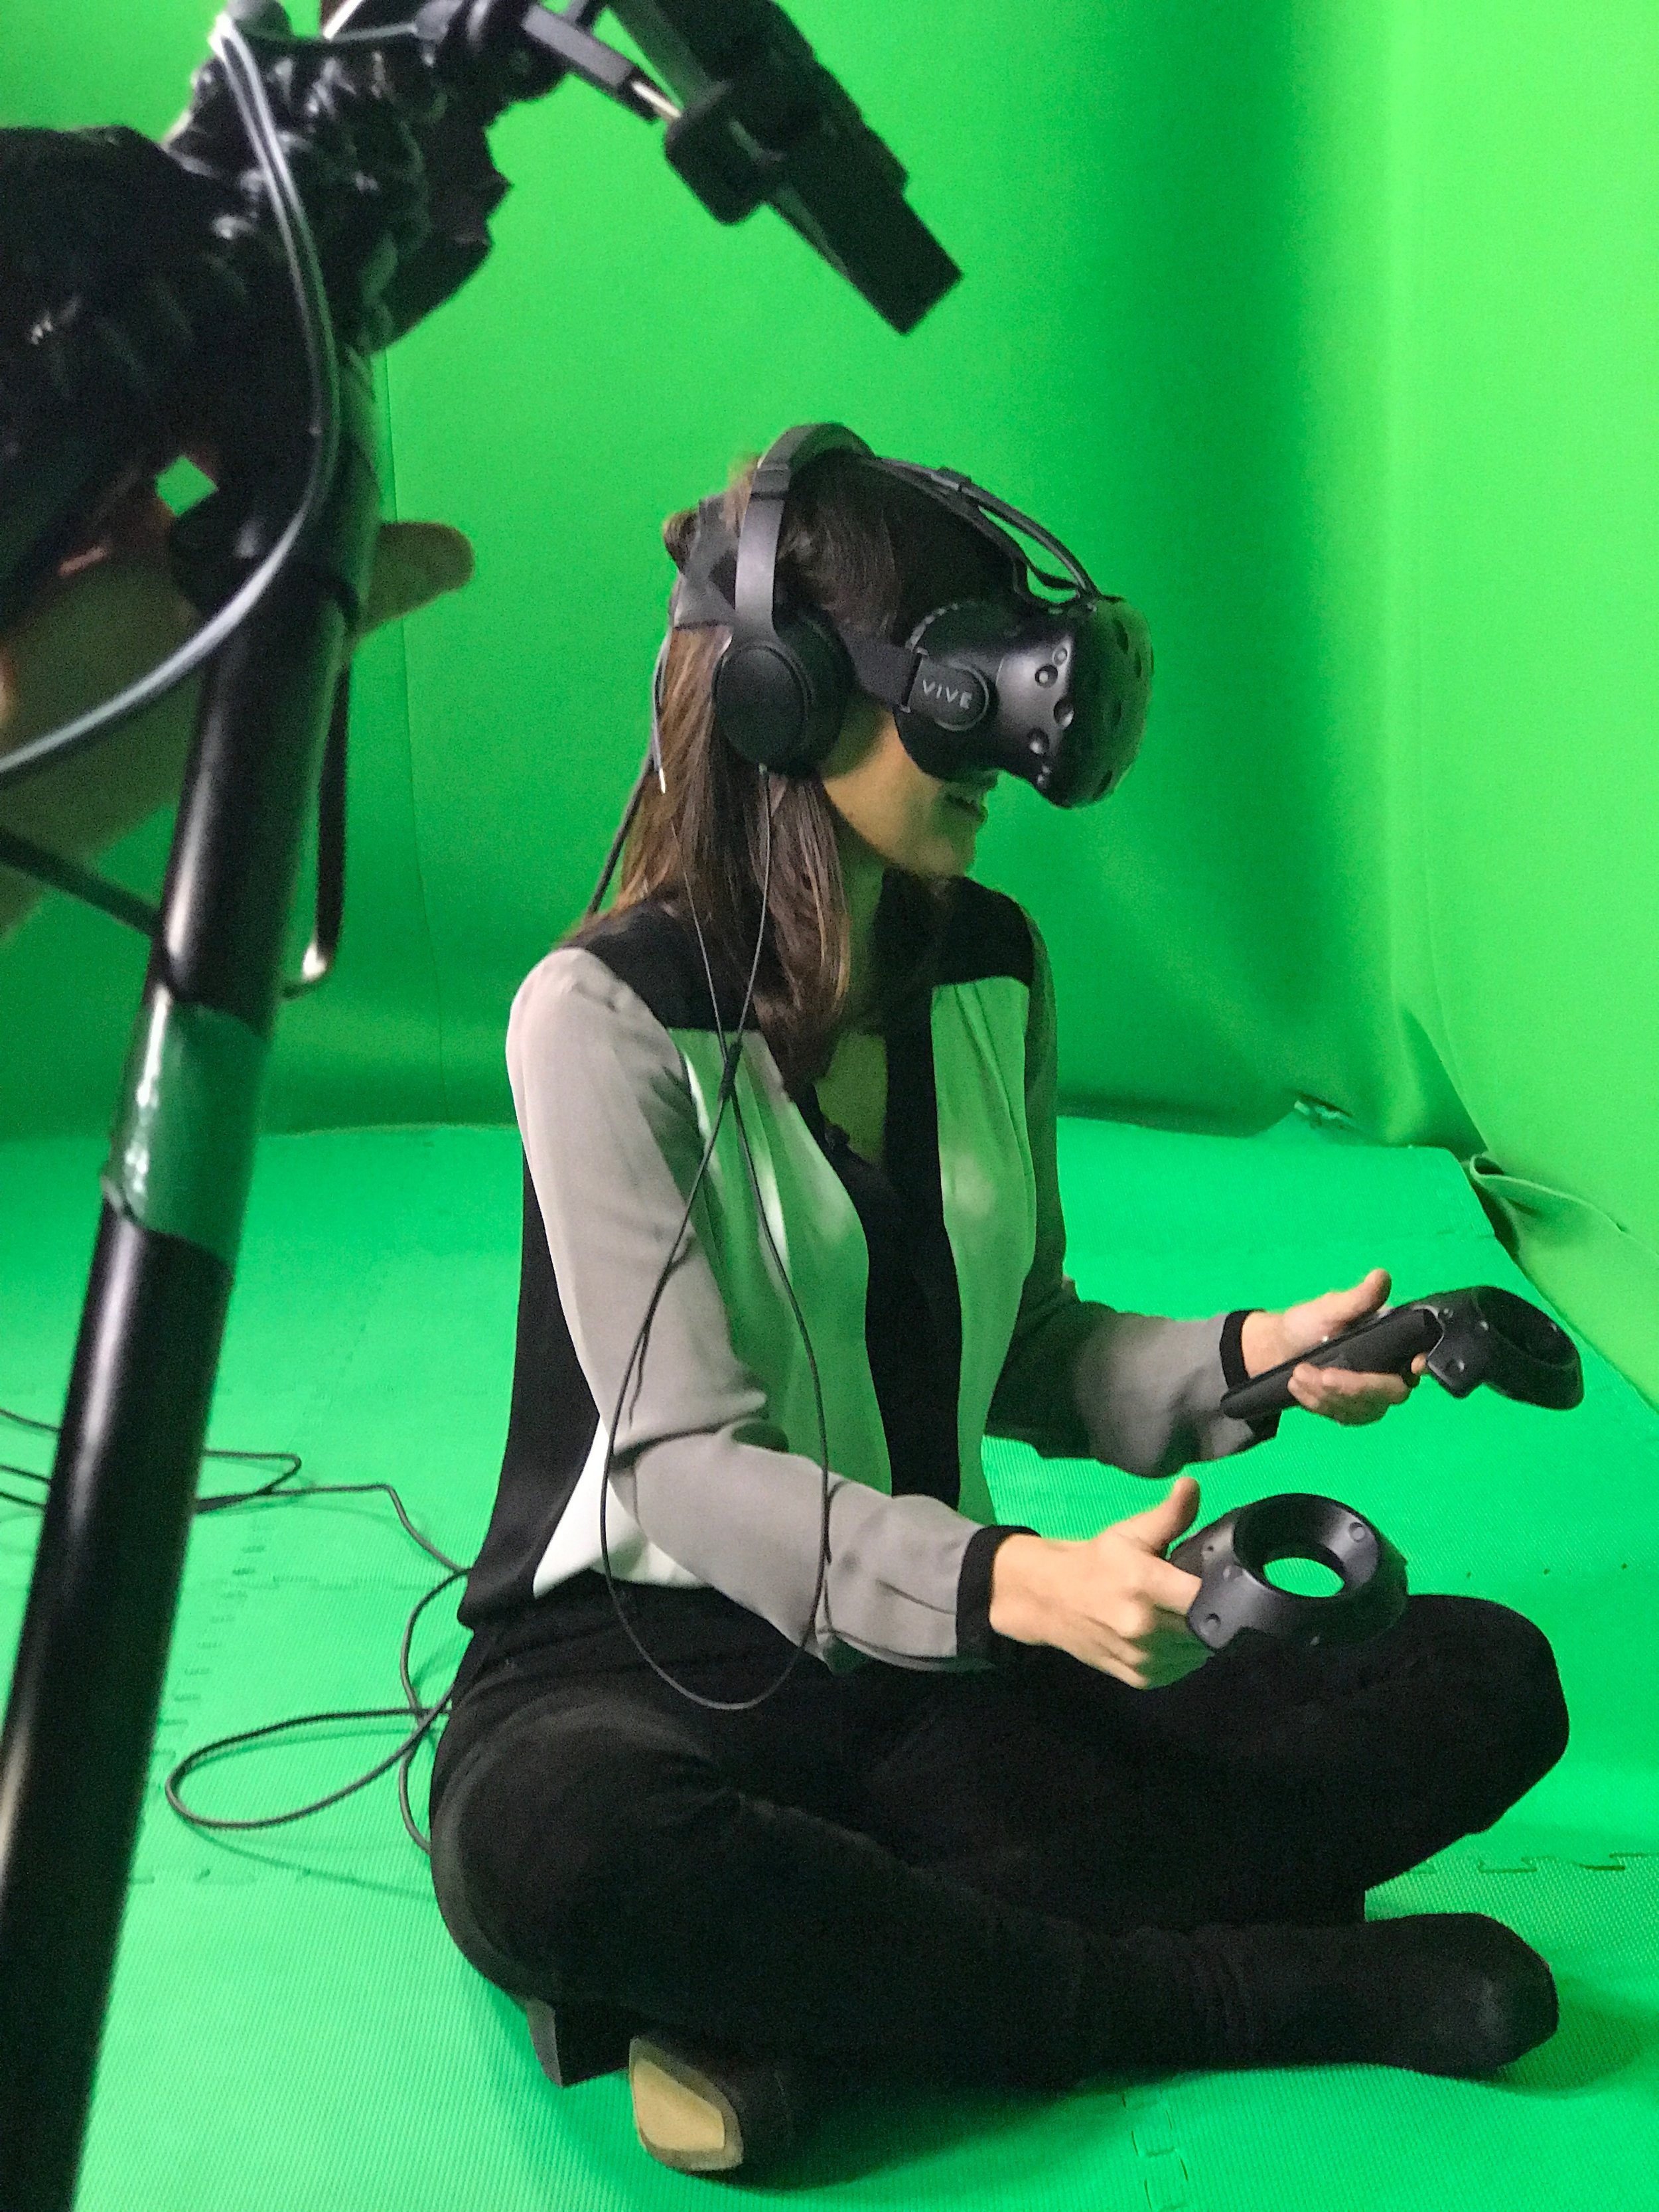 Host, Laurie Segall joins a group of online gamers in virtual reality.